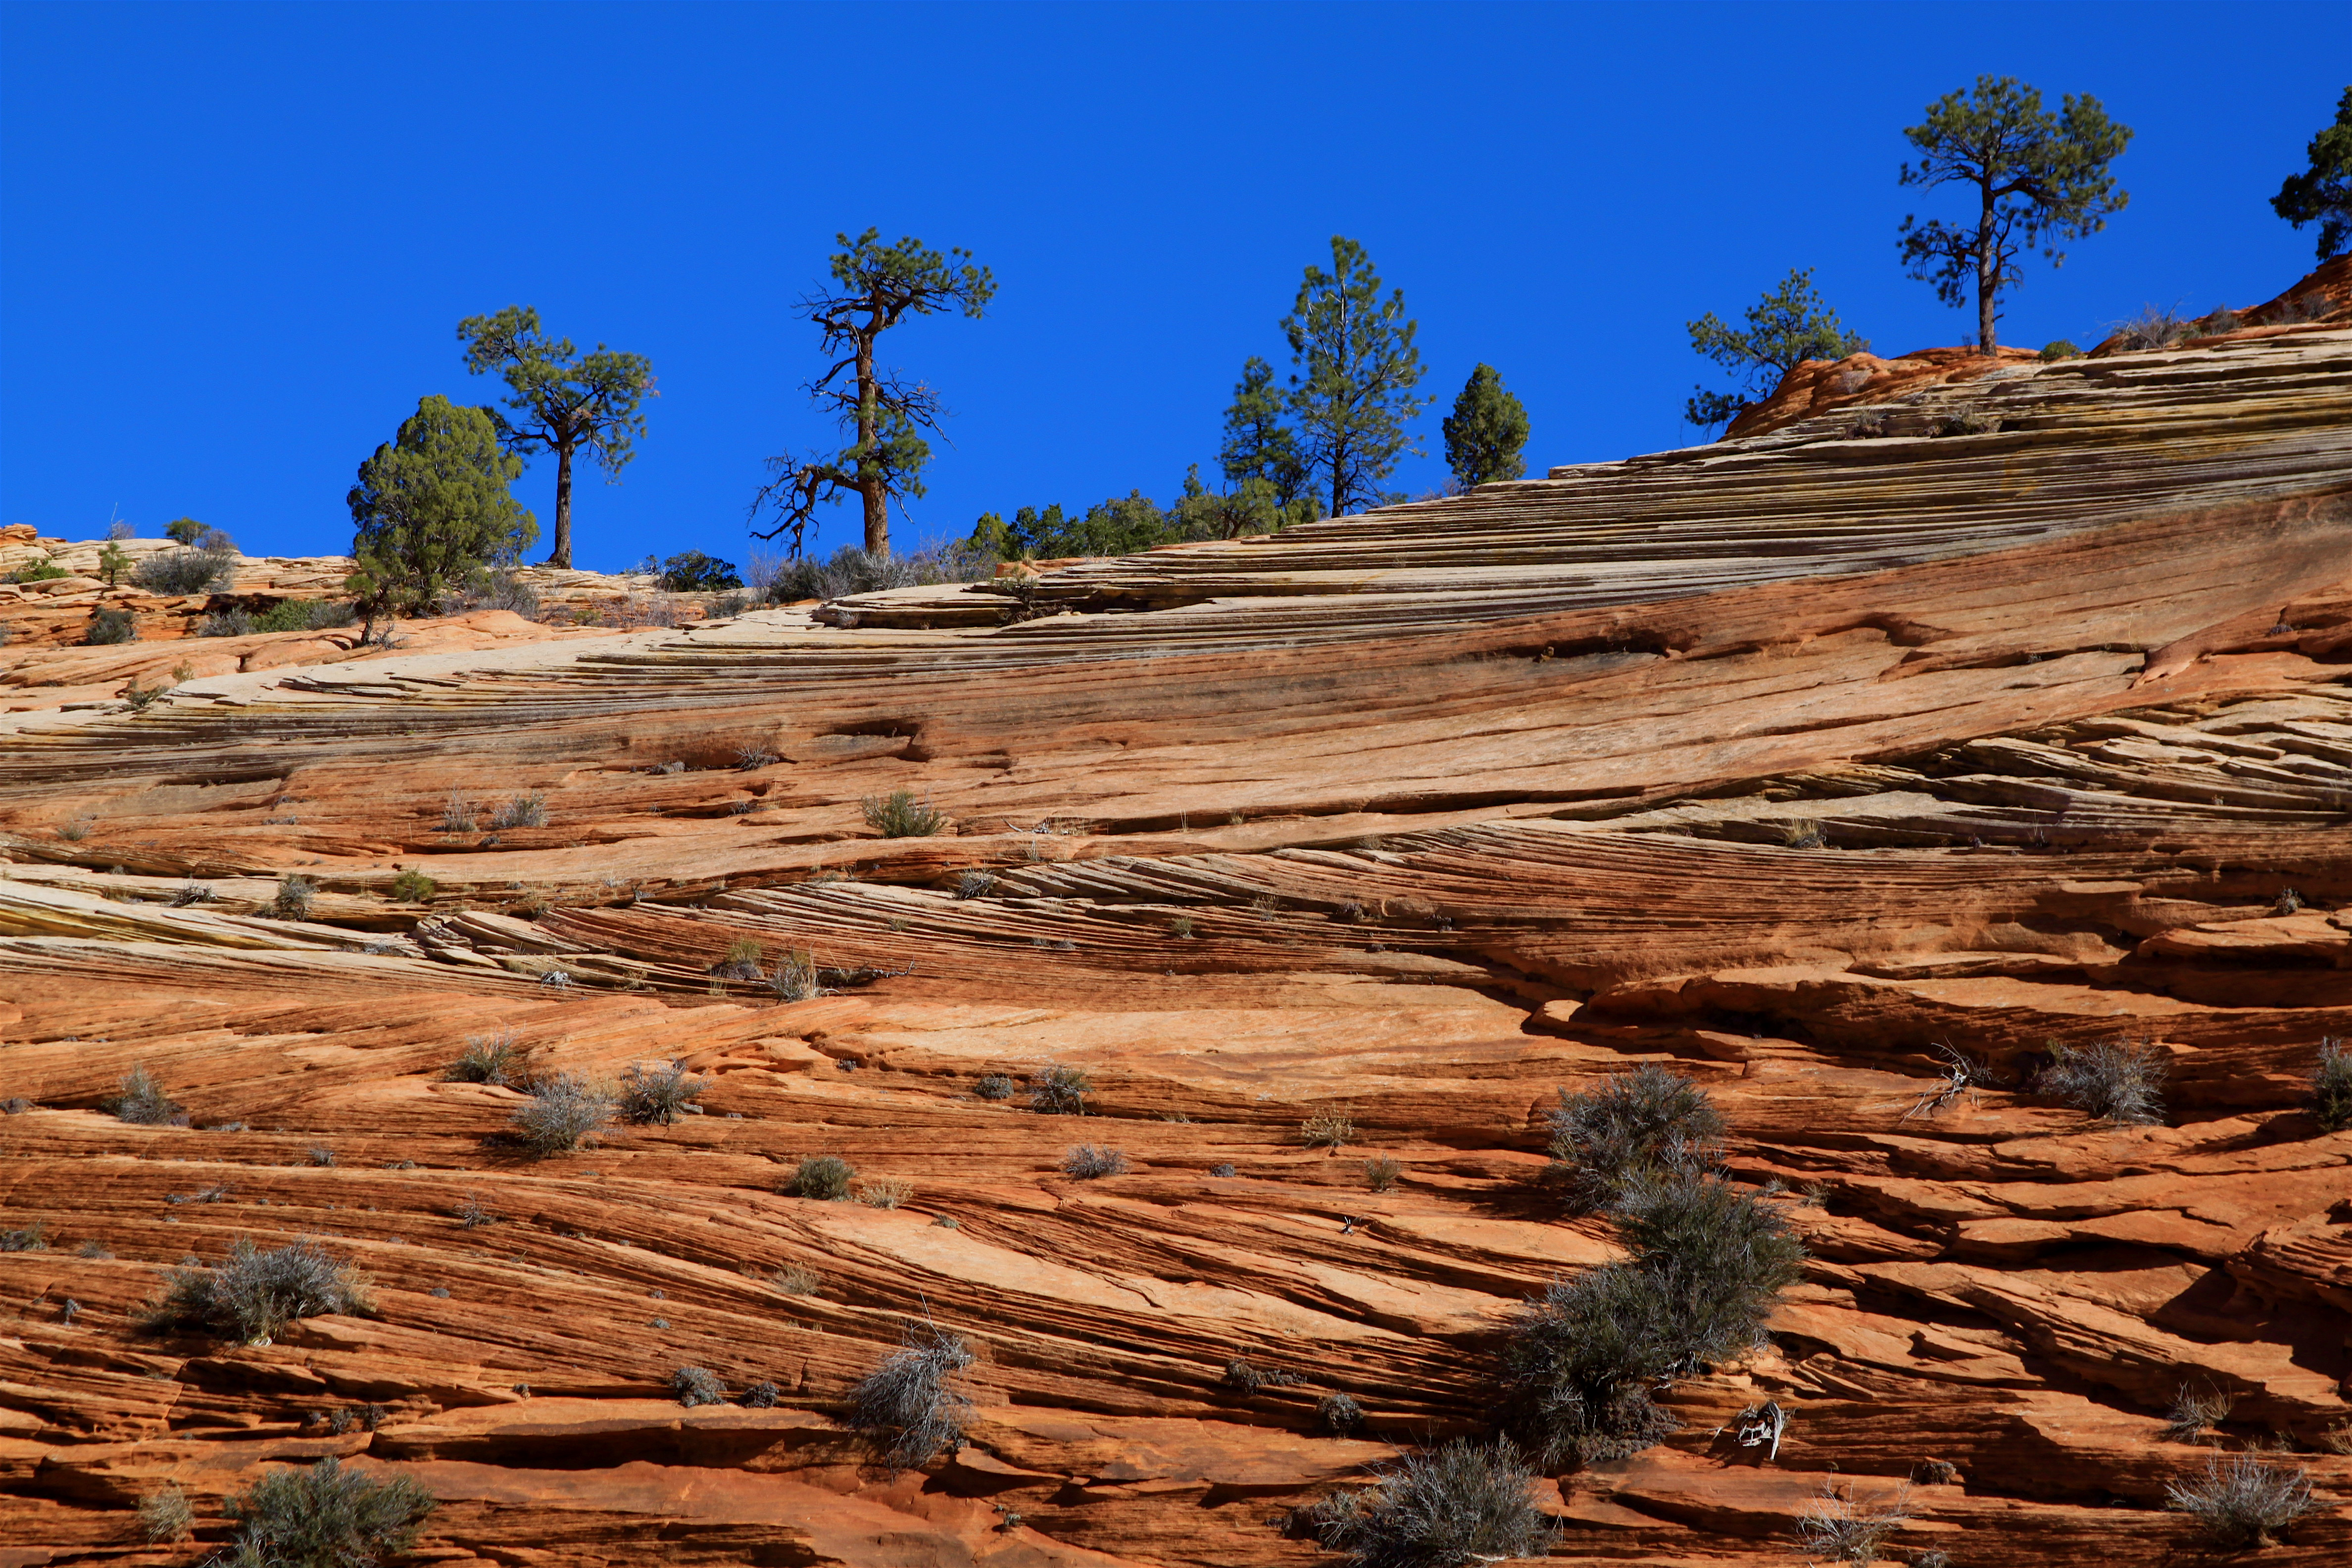 Sandstone showing Cross-bedding Zion National Park Utah USA